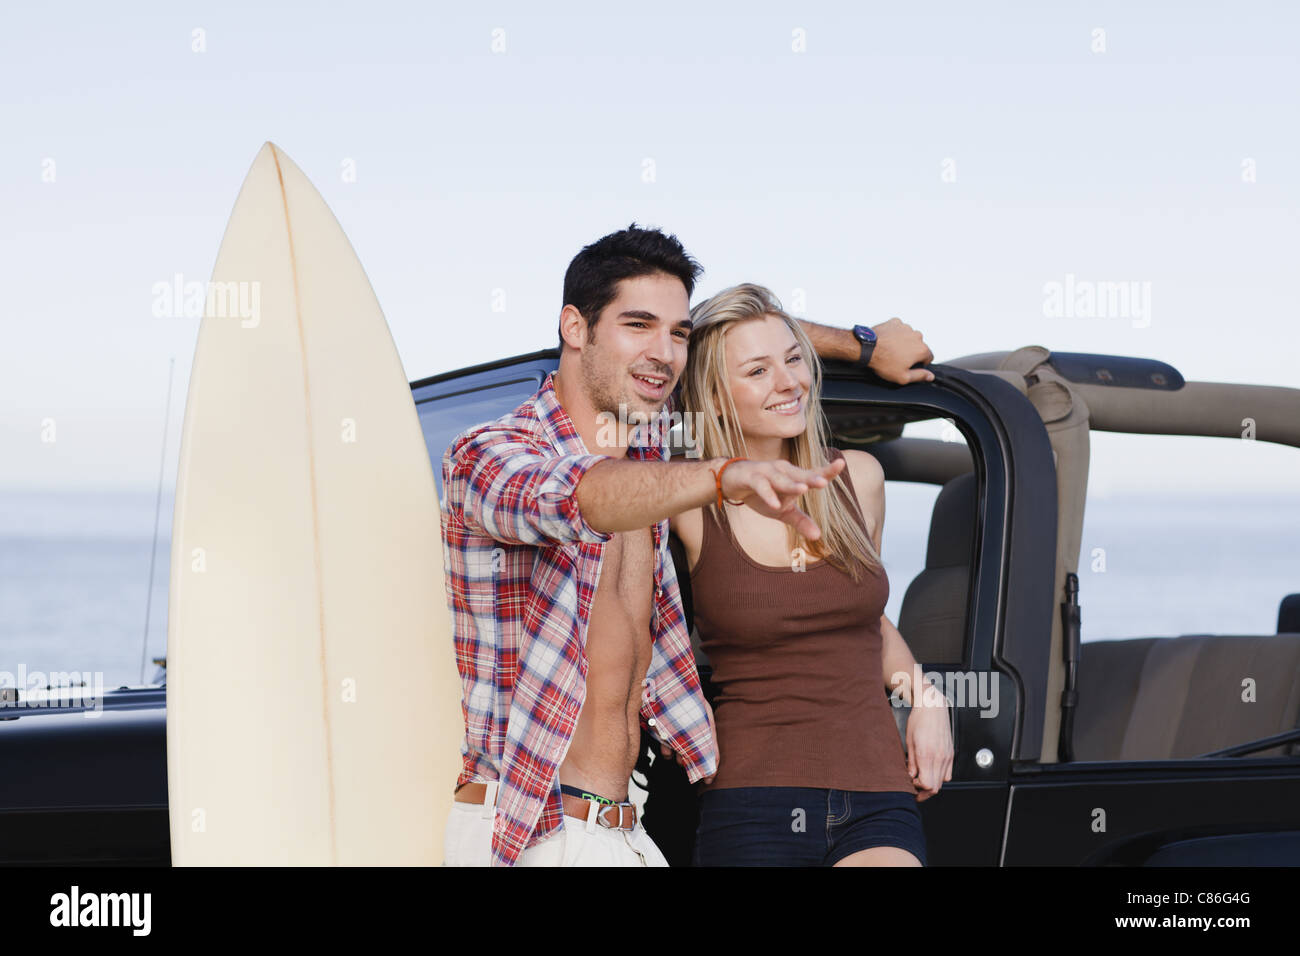 Smiling couple hugging by jeep - Stock Image